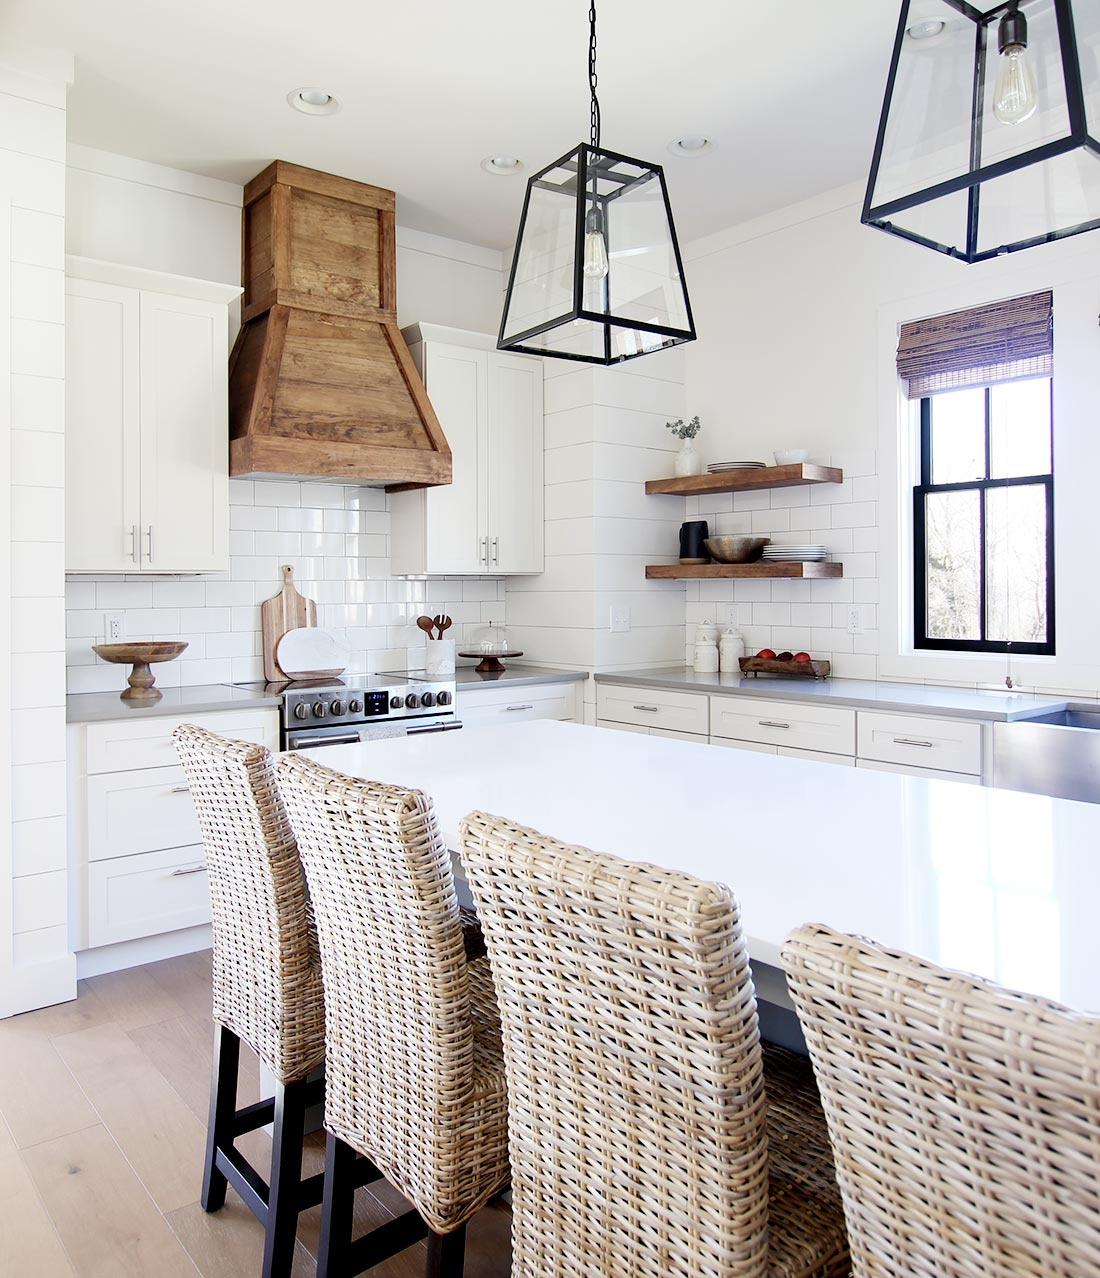 When We Designed The Kitchen In Our Modern Farmhouse Chose To Go With A Stainless Hood Add Little However After Living